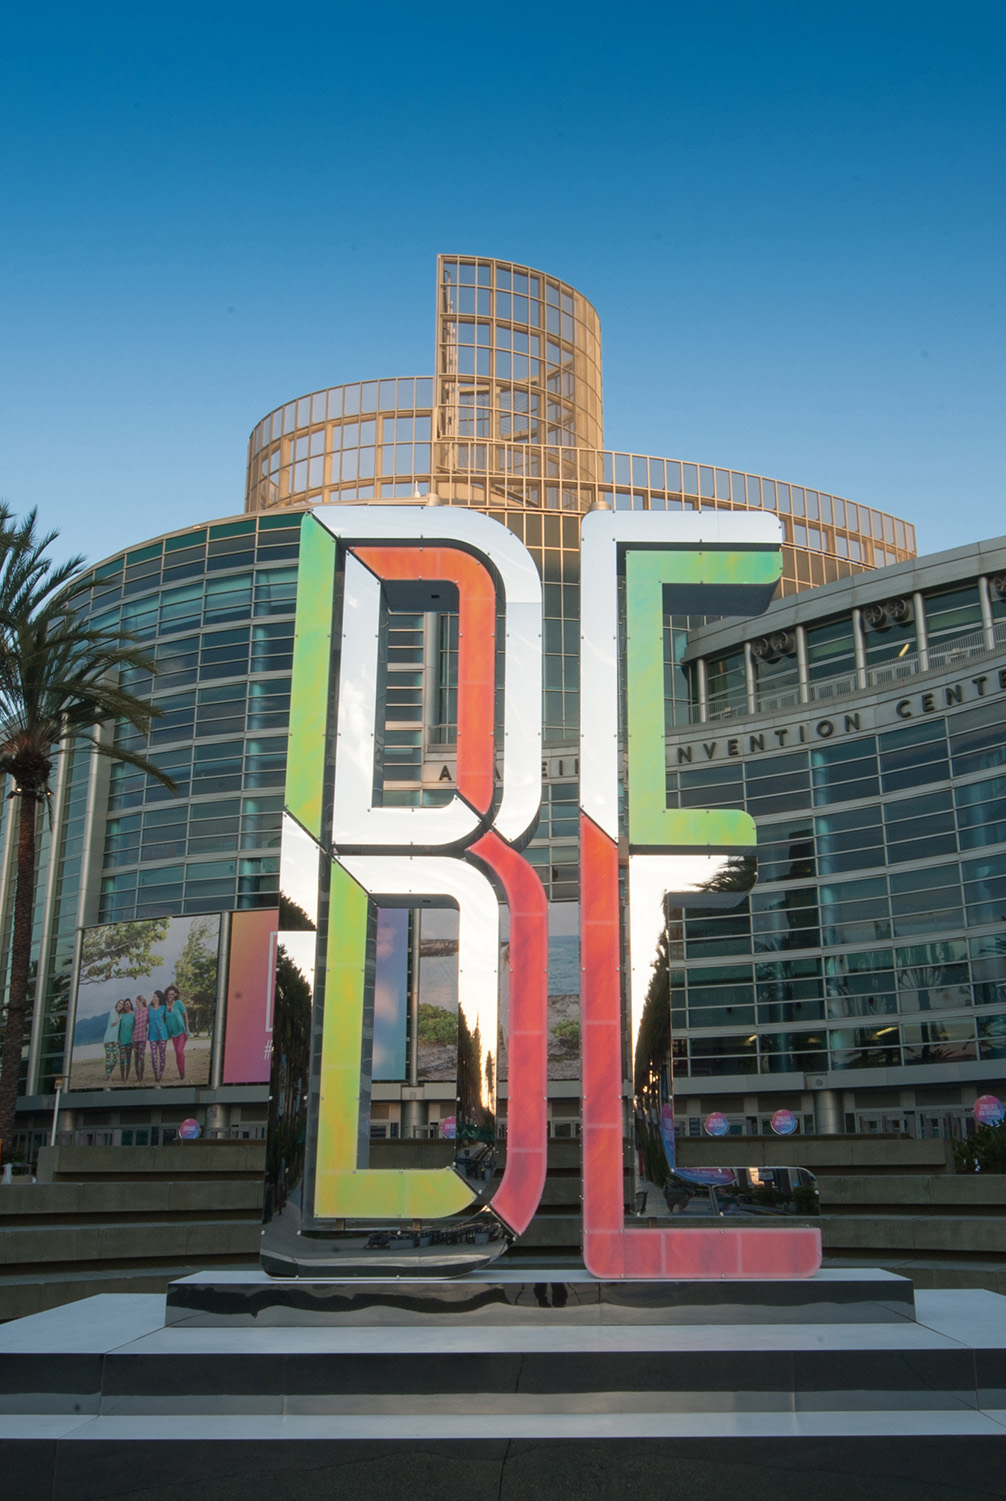 LuLaRoe 2018 Convention BE in Oversized Letters Outdoor Branding